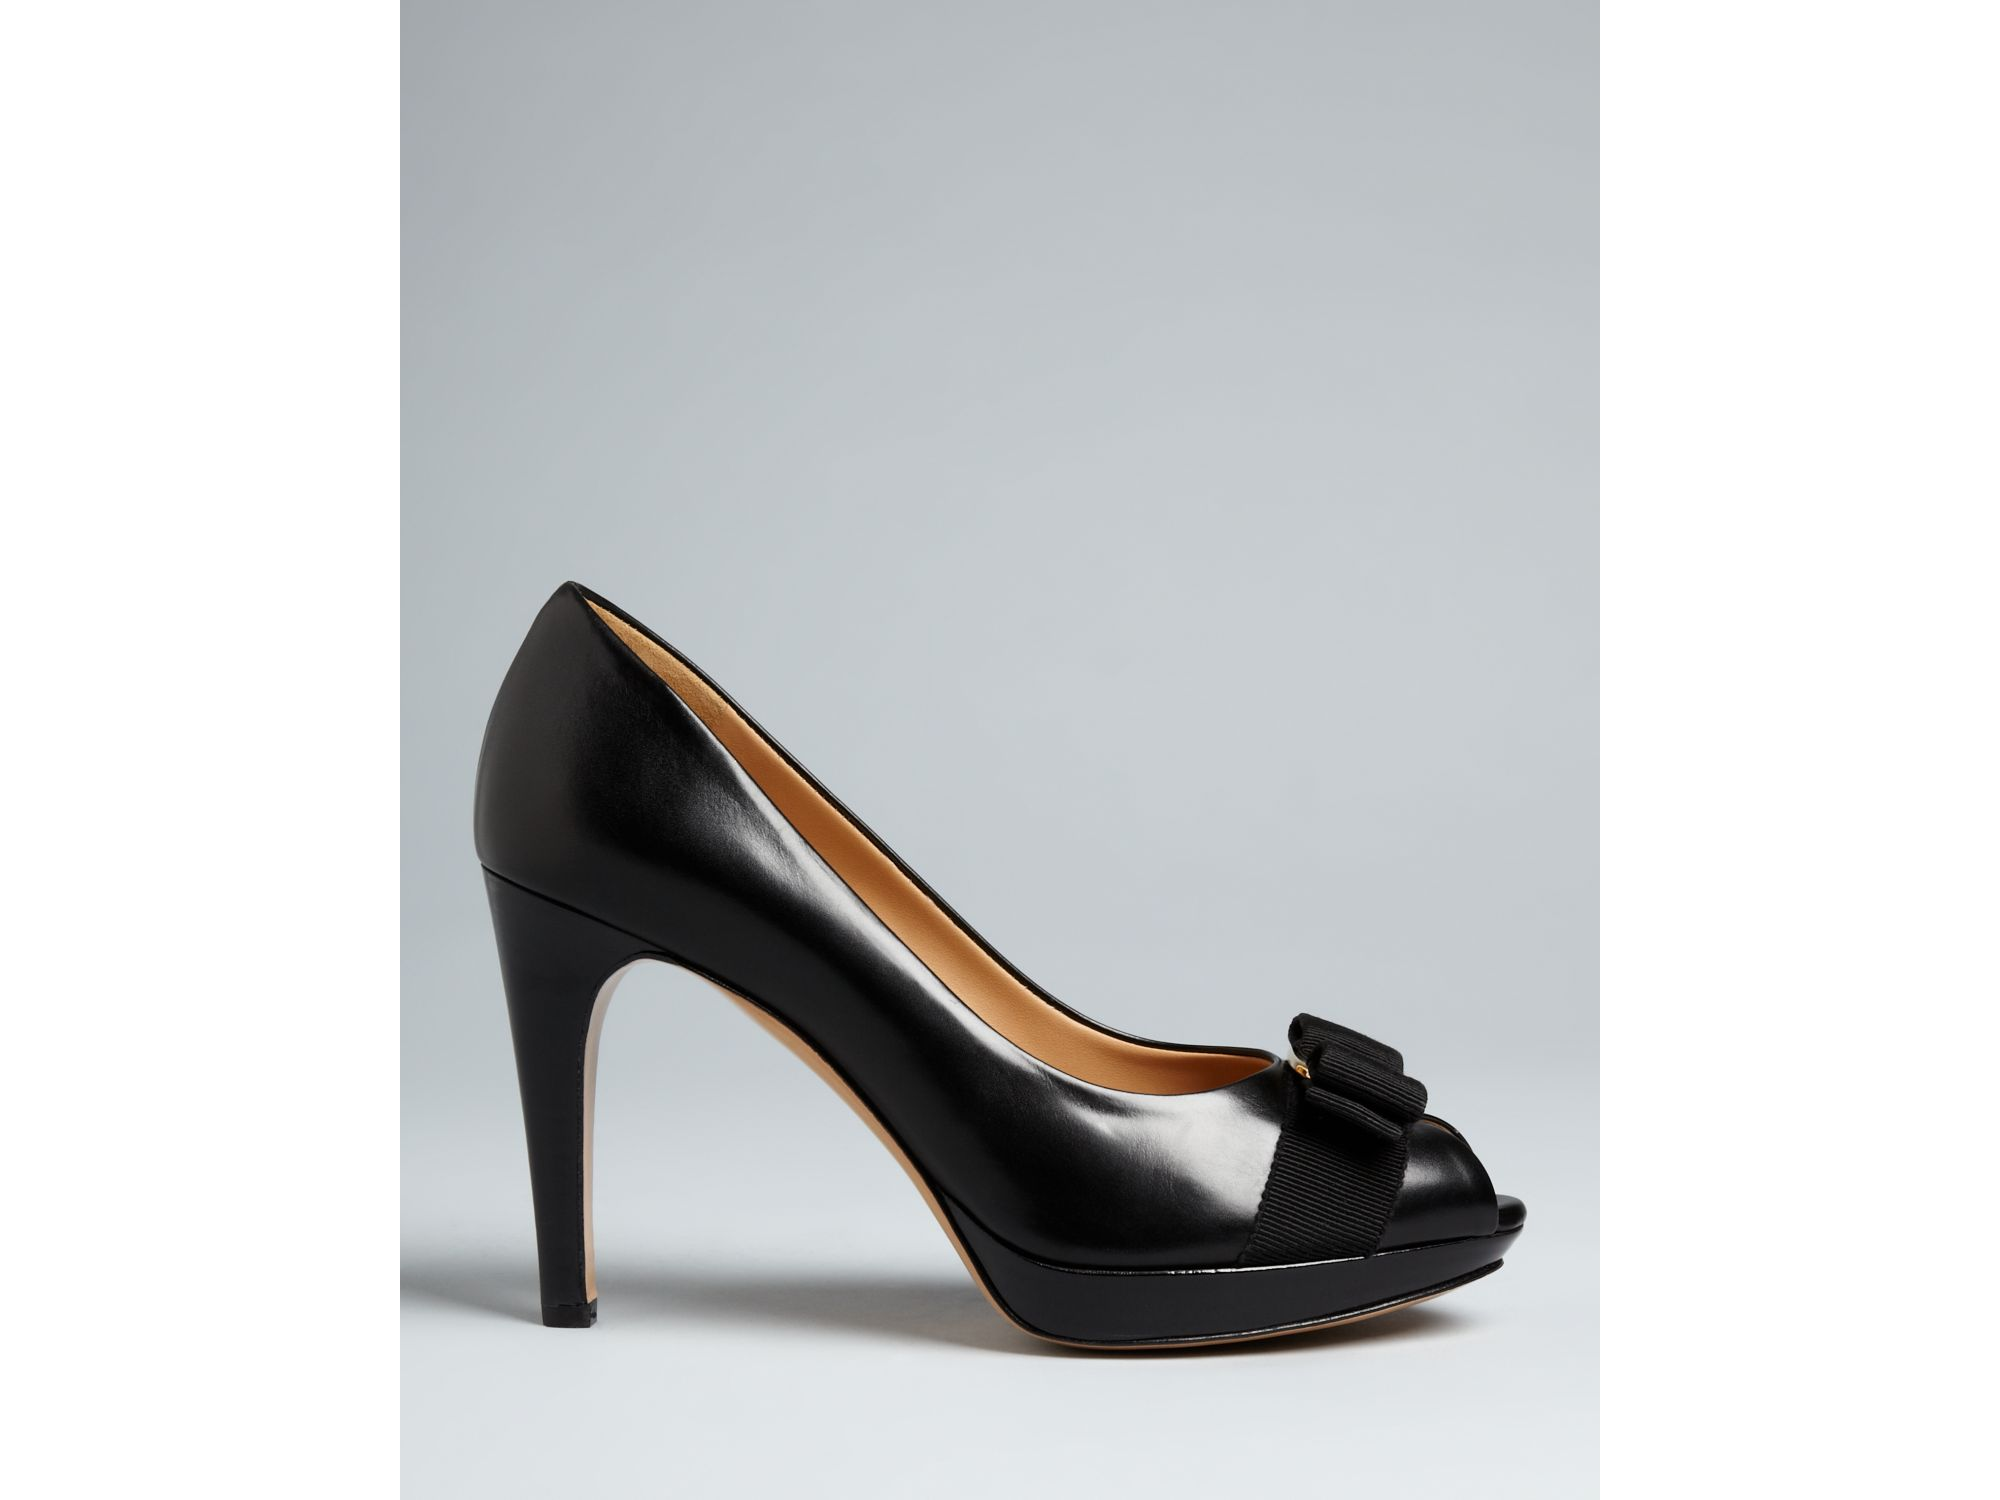 d10926fce852 Lyst - Ferragamo Pumps Talia High Heel Peep Toe Platform in Black